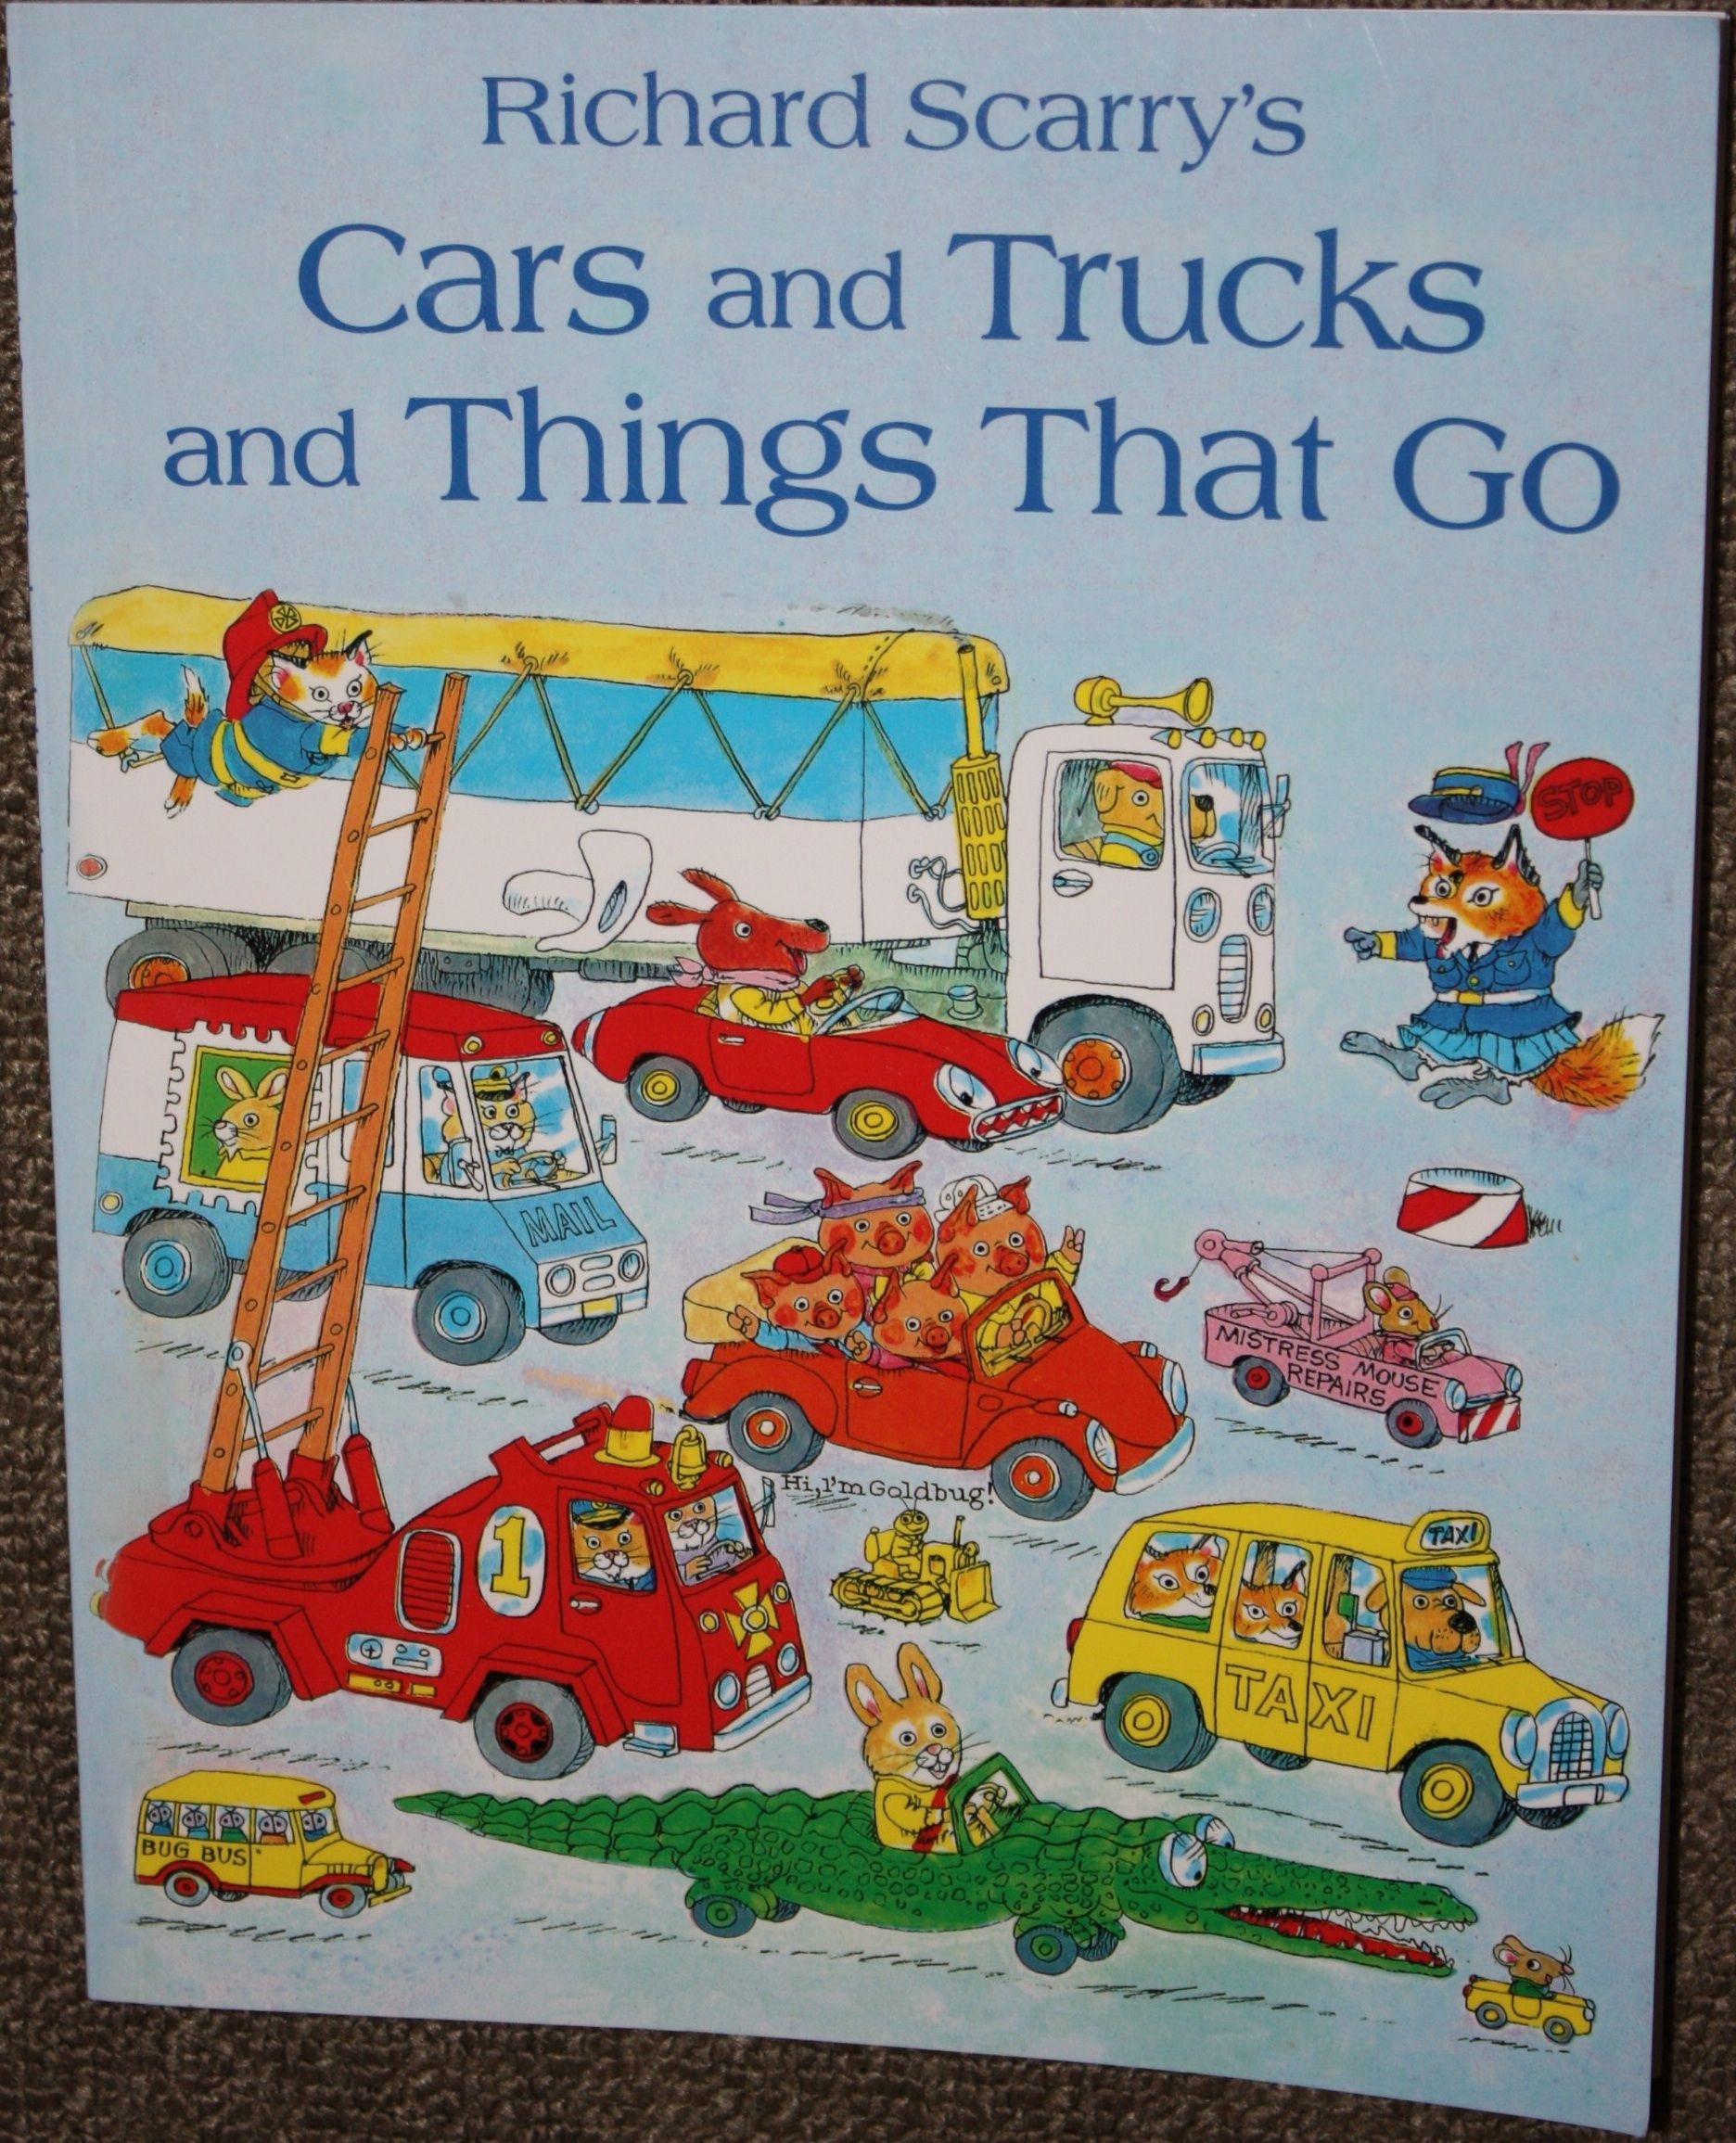 Cars, Trucks and Things that Go by Richard Scarry